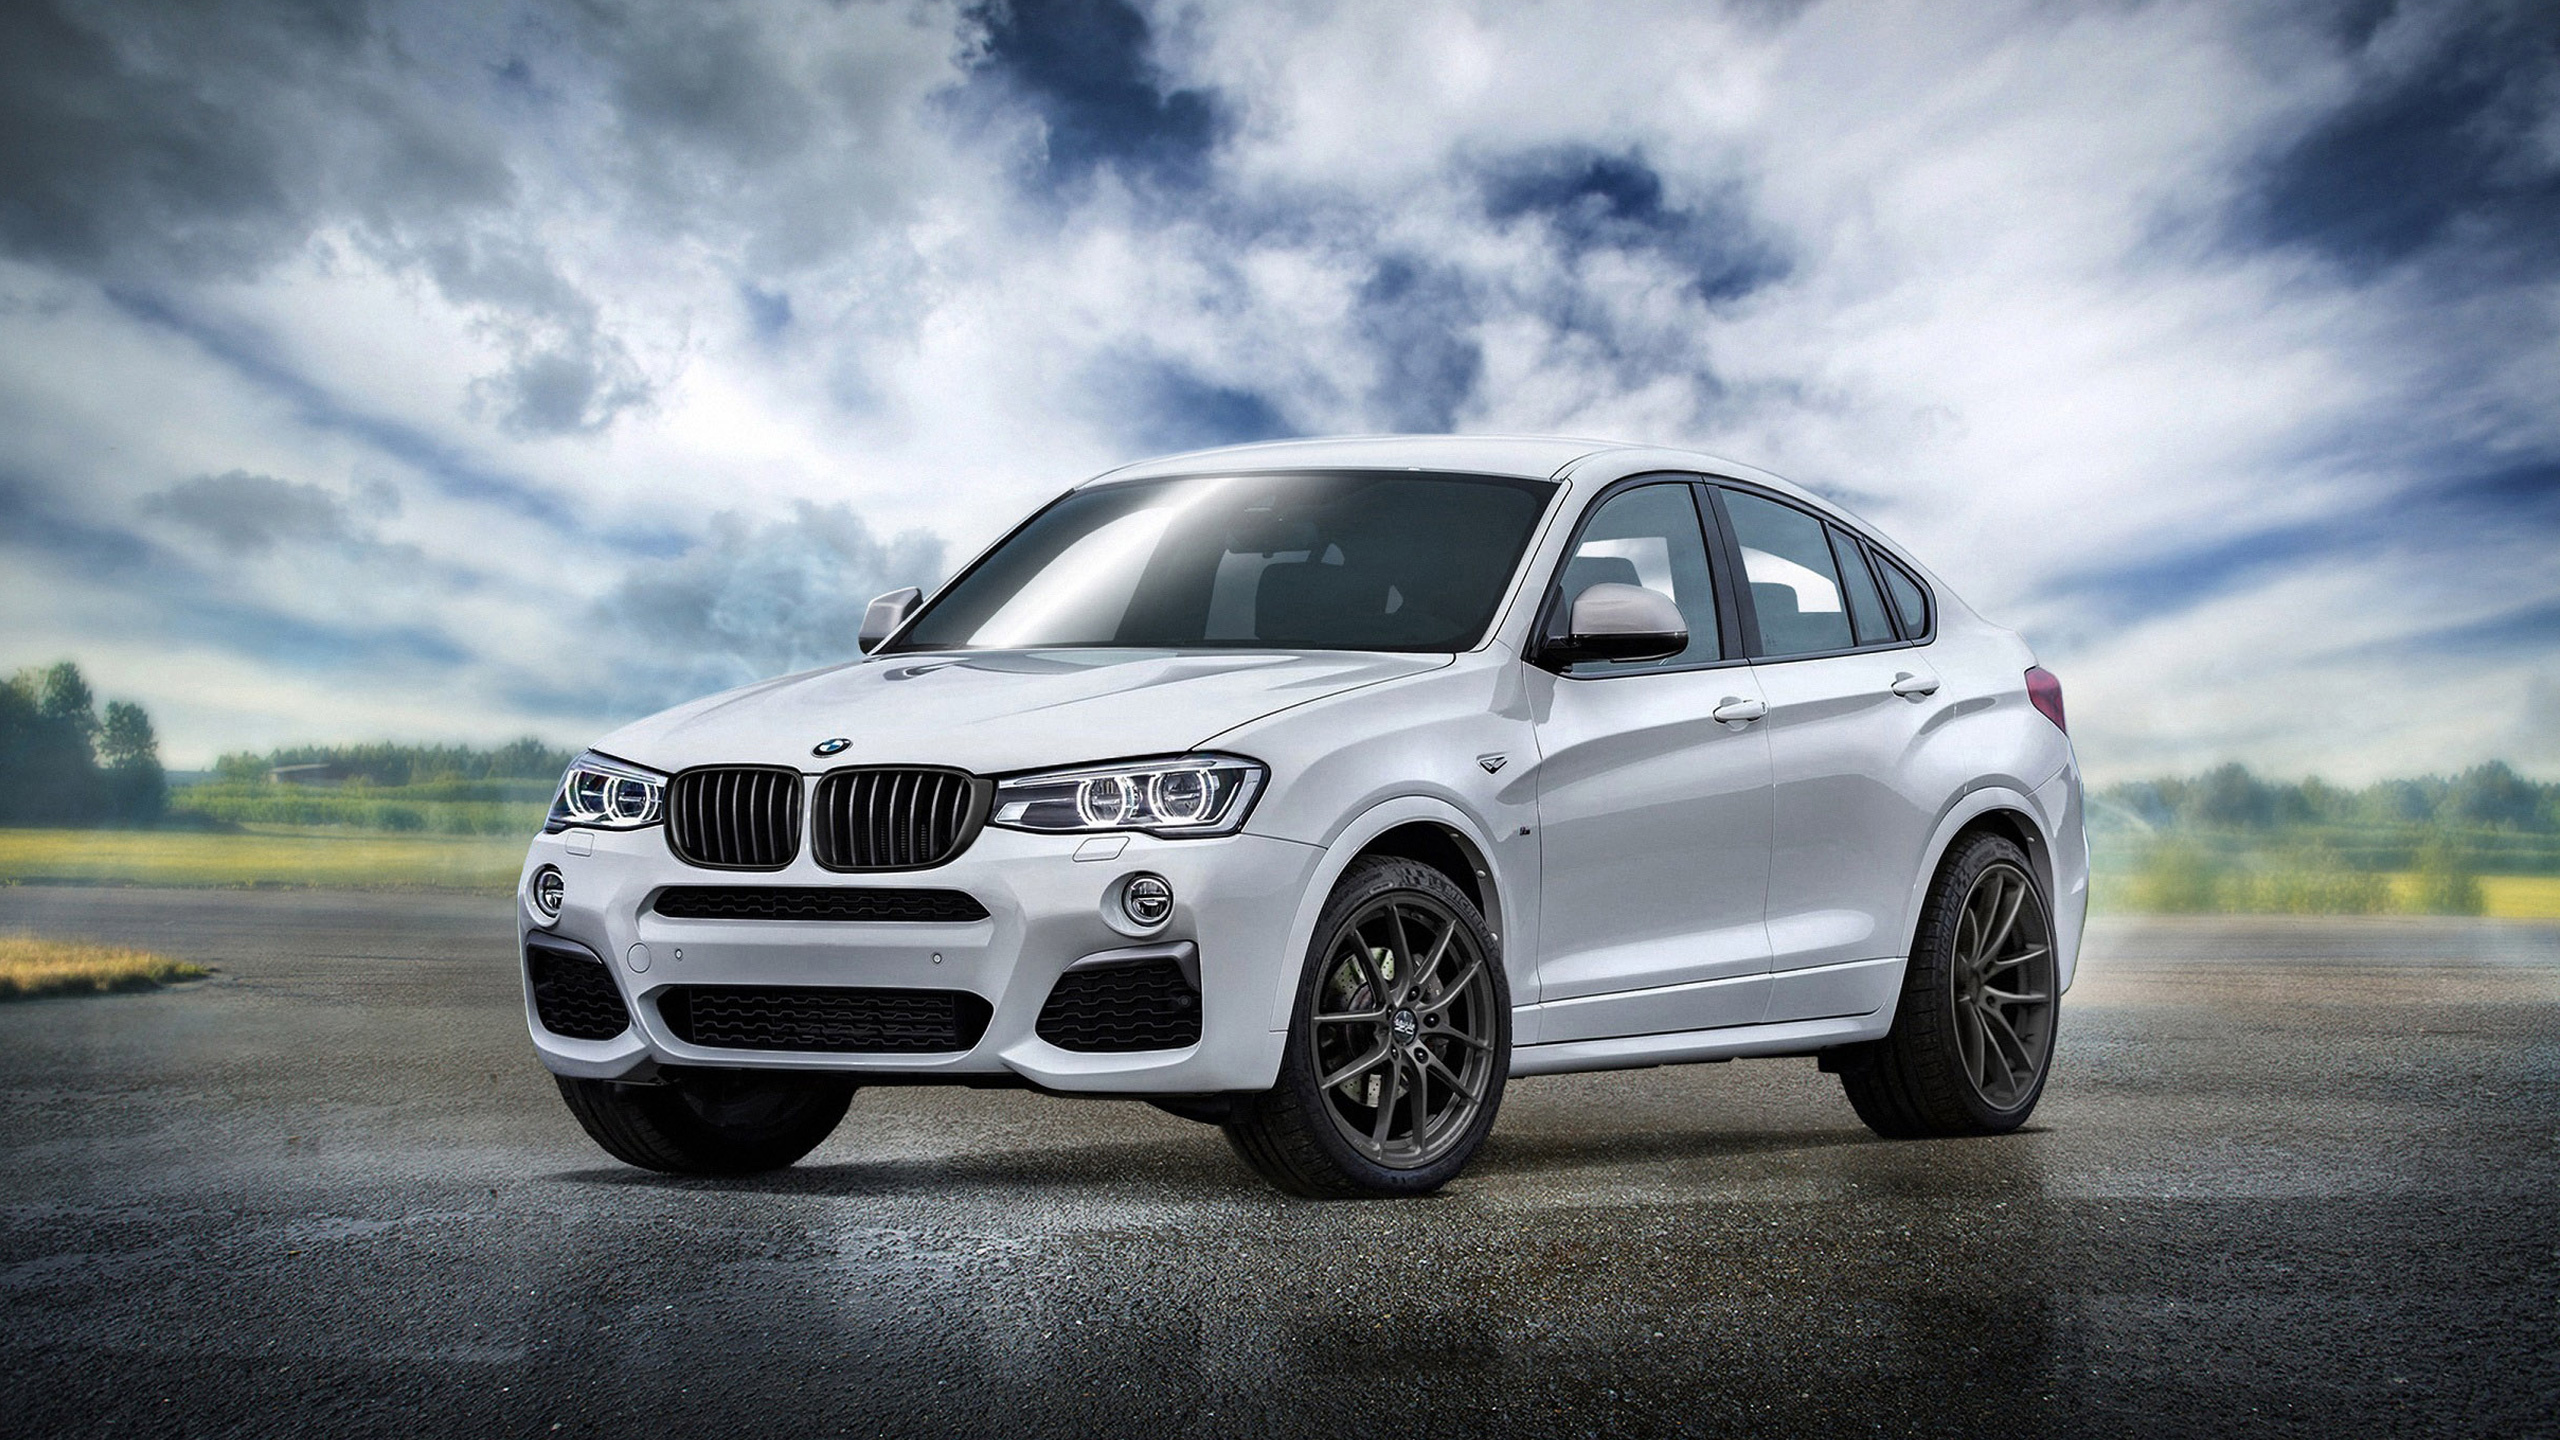 2016 alpha n performance bmw x3 wallpaper hd car wallpapers id 6446. Black Bedroom Furniture Sets. Home Design Ideas